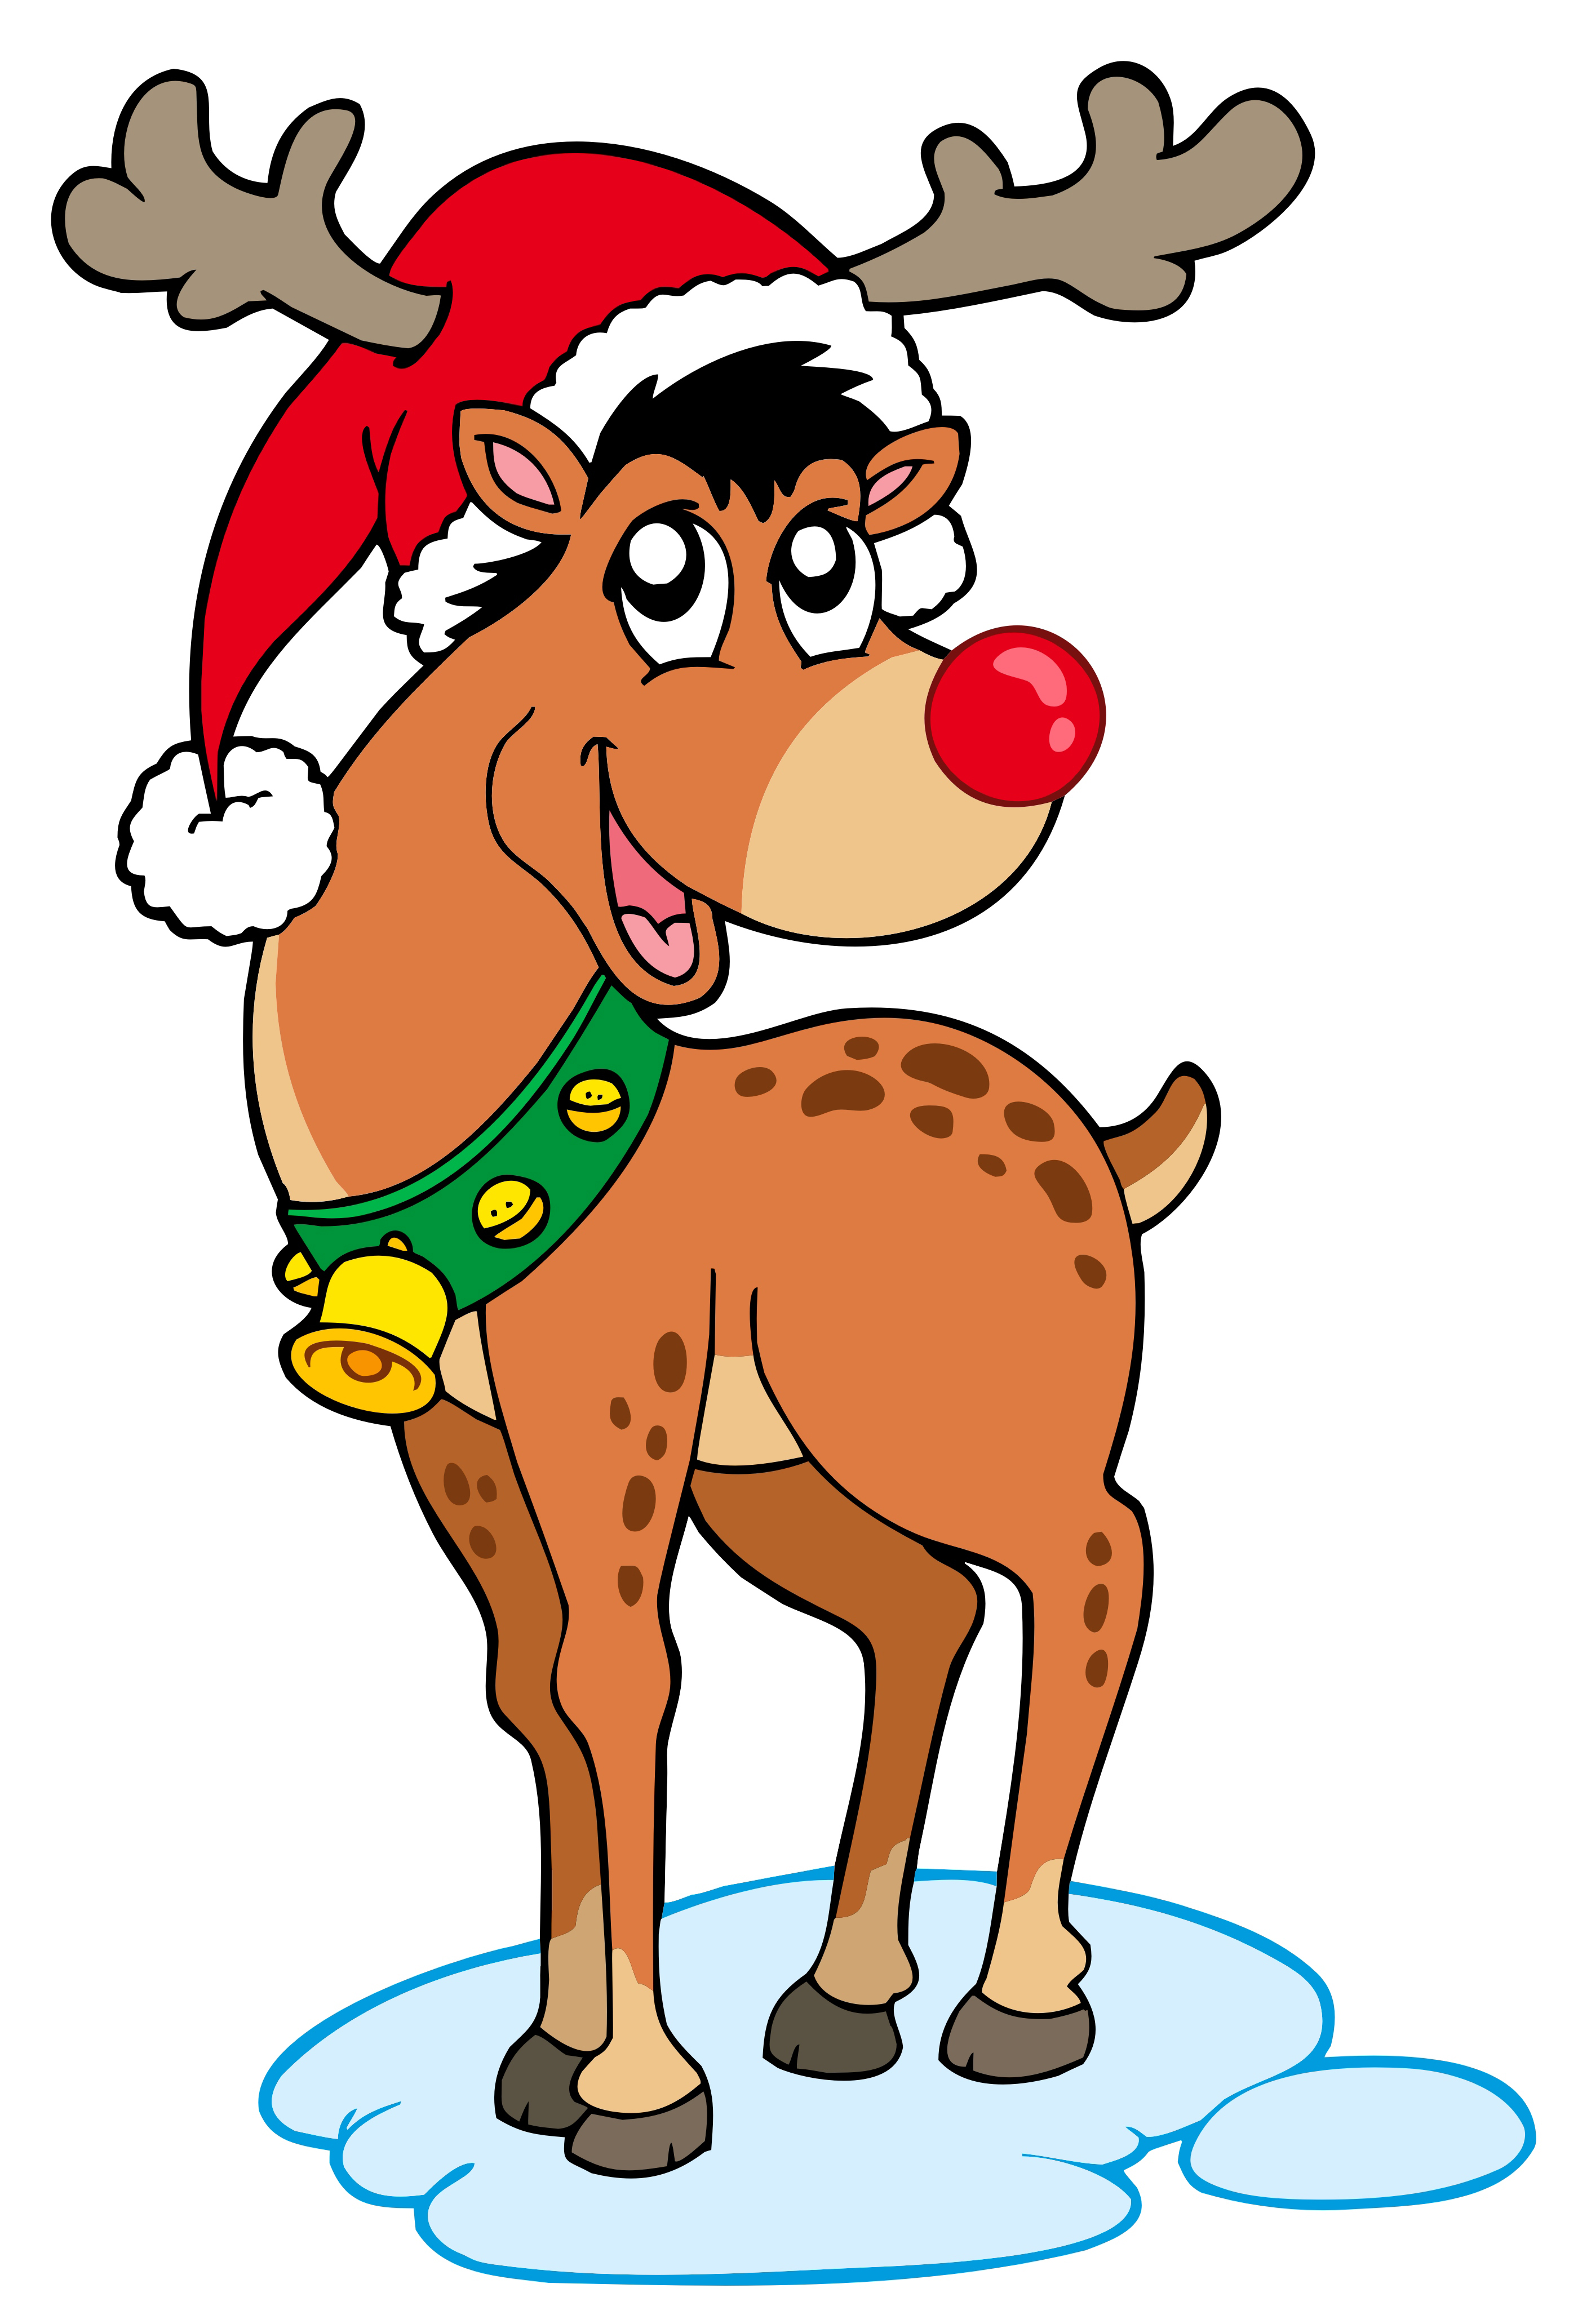 Rudolph the red nosed reindeer clipart images clipart royalty free stock Free Rudolph Reindeer Pictures, Download Free Clip Art, Free ... clipart royalty free stock